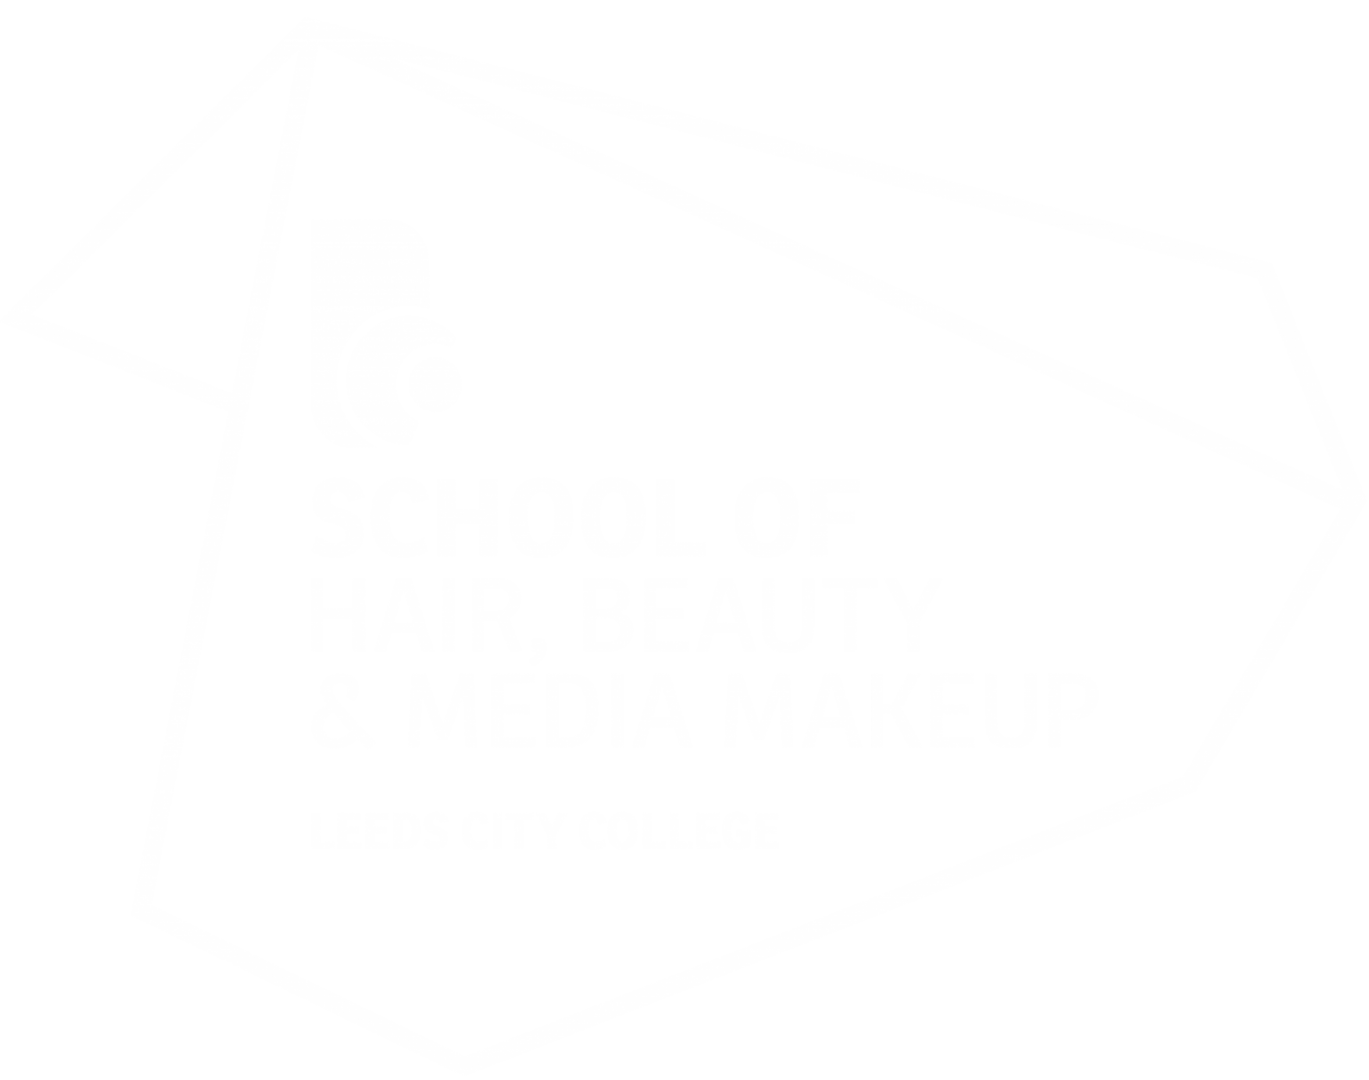 School of Hair, Beauty & Media Makeup